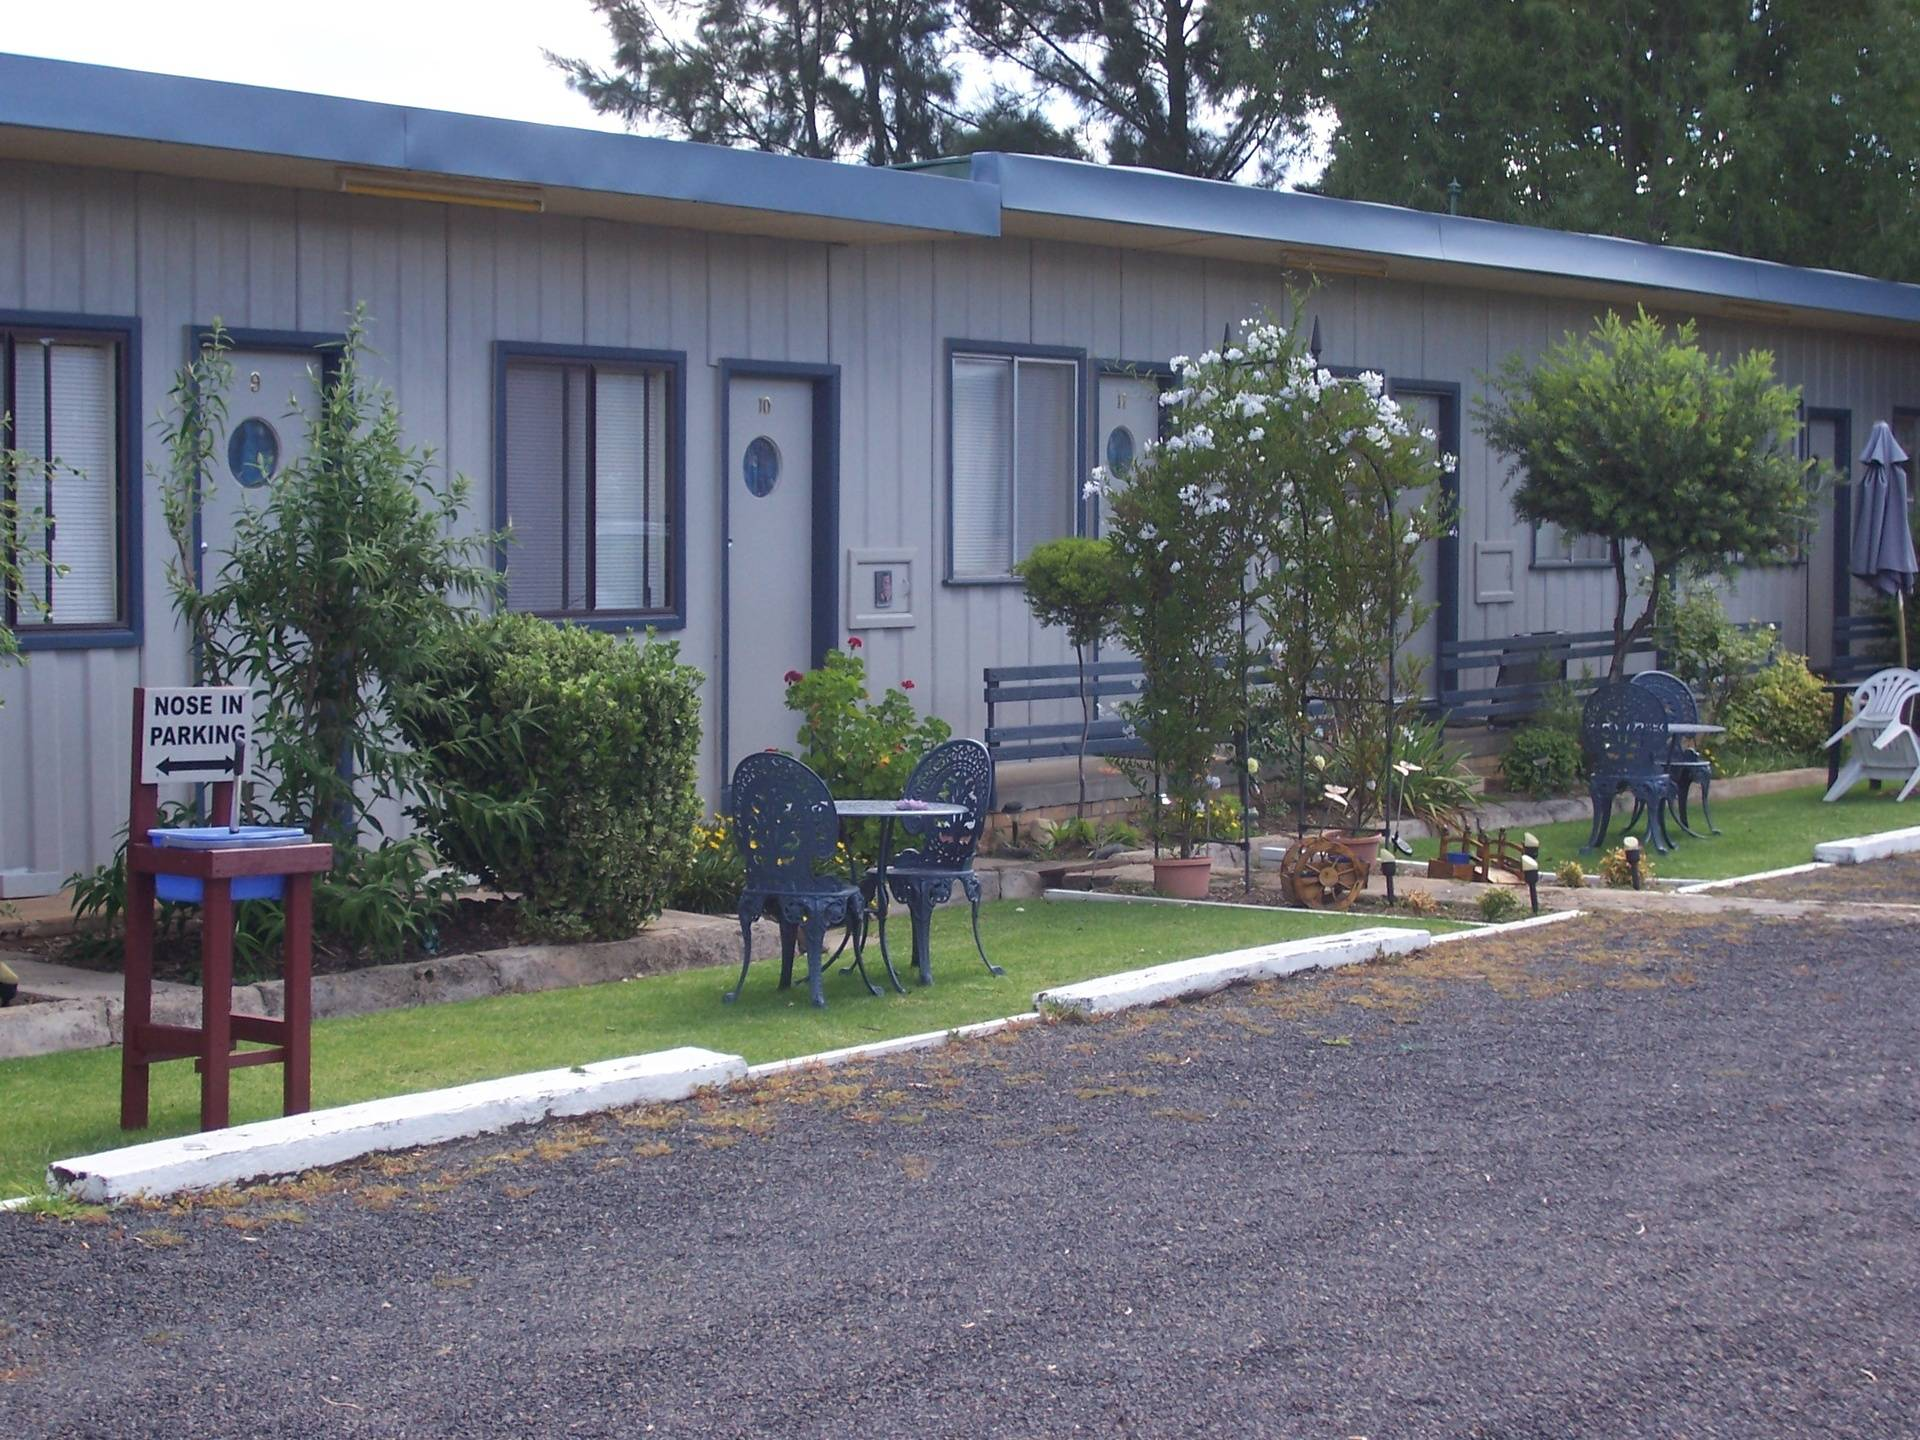 Black Stump Motel, 10 Campbell st, Coolah, NSW, 2843, Australia